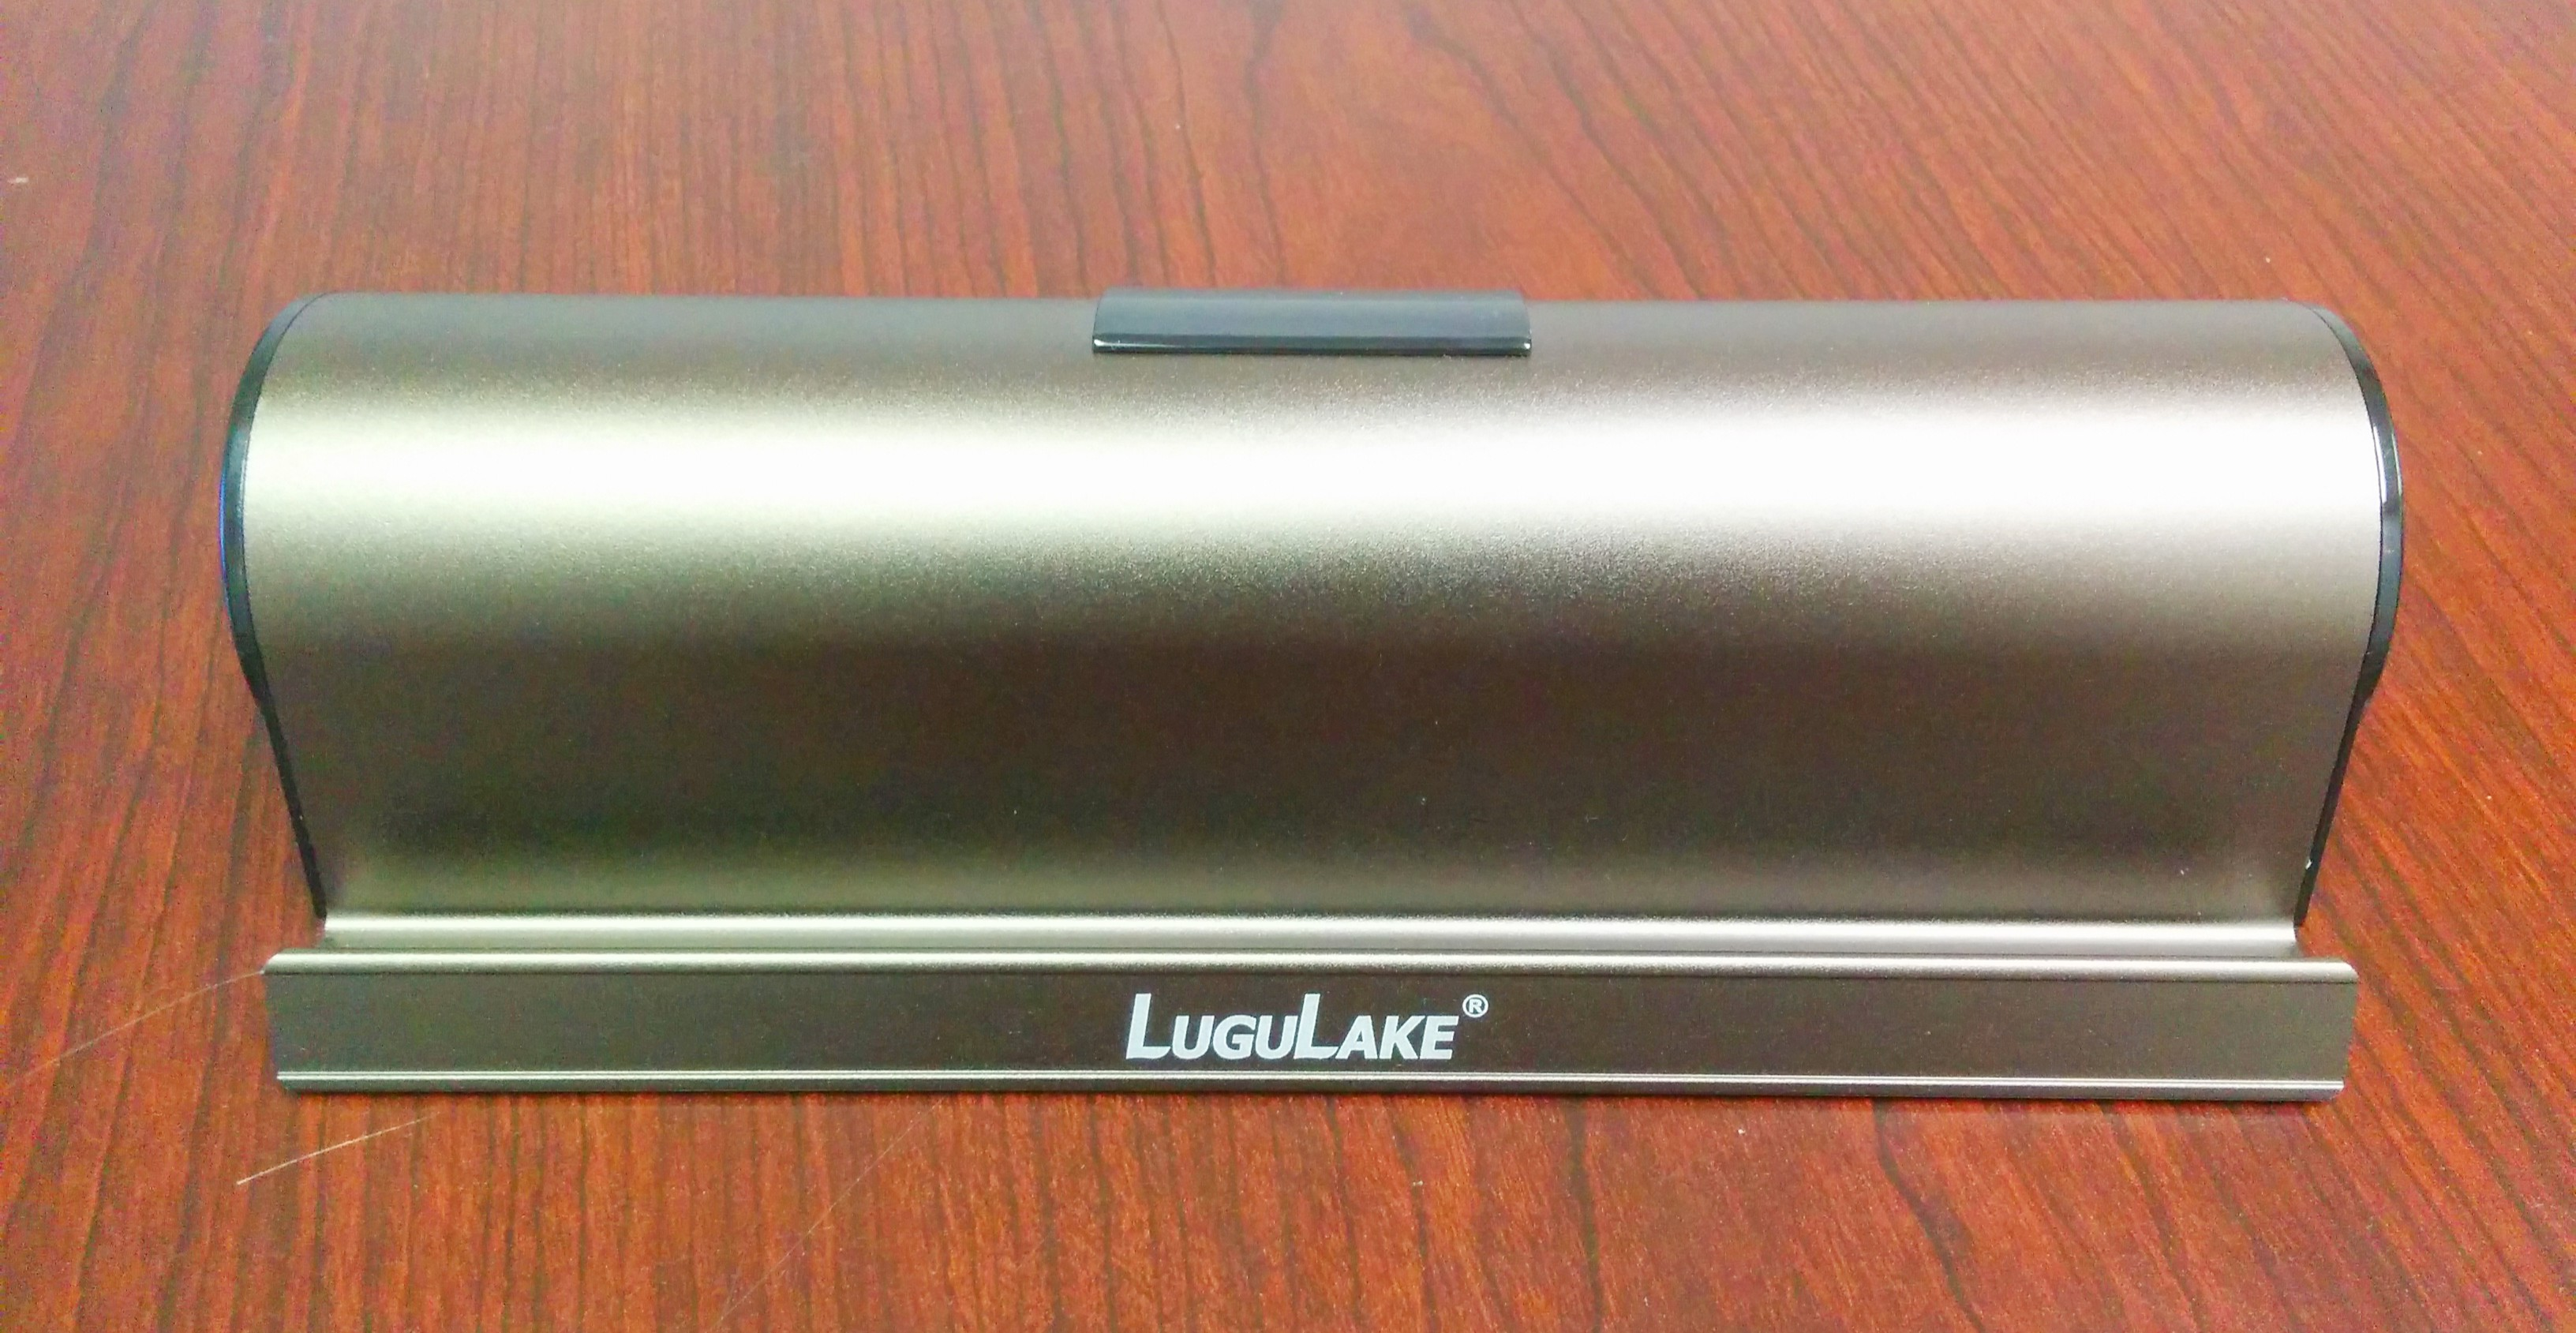 LuguLake Bluetooth Speaker